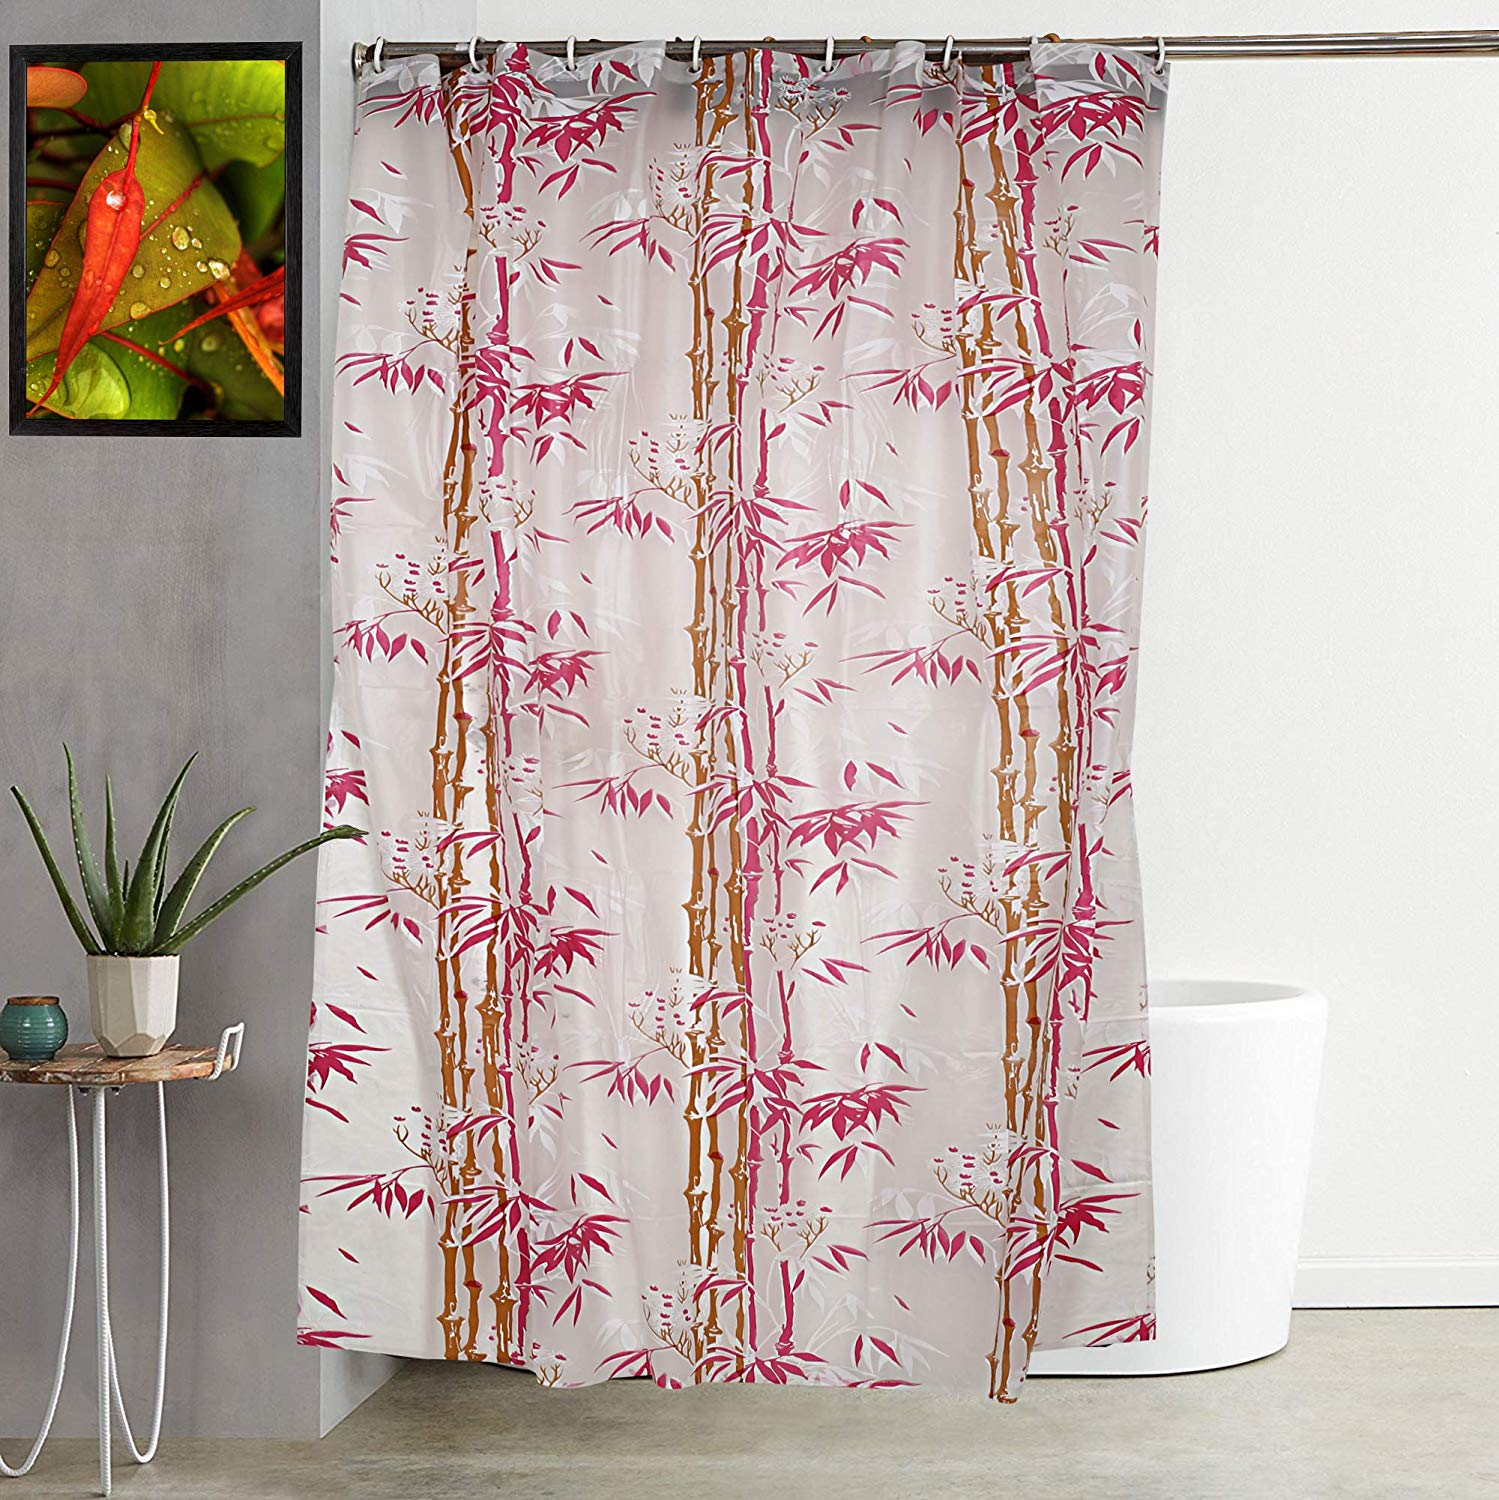 Kuber Industries Bamboo Design Waterproof PVC Shower Curtain with 8 Hooks 54 inch x 84 inch (Pink)